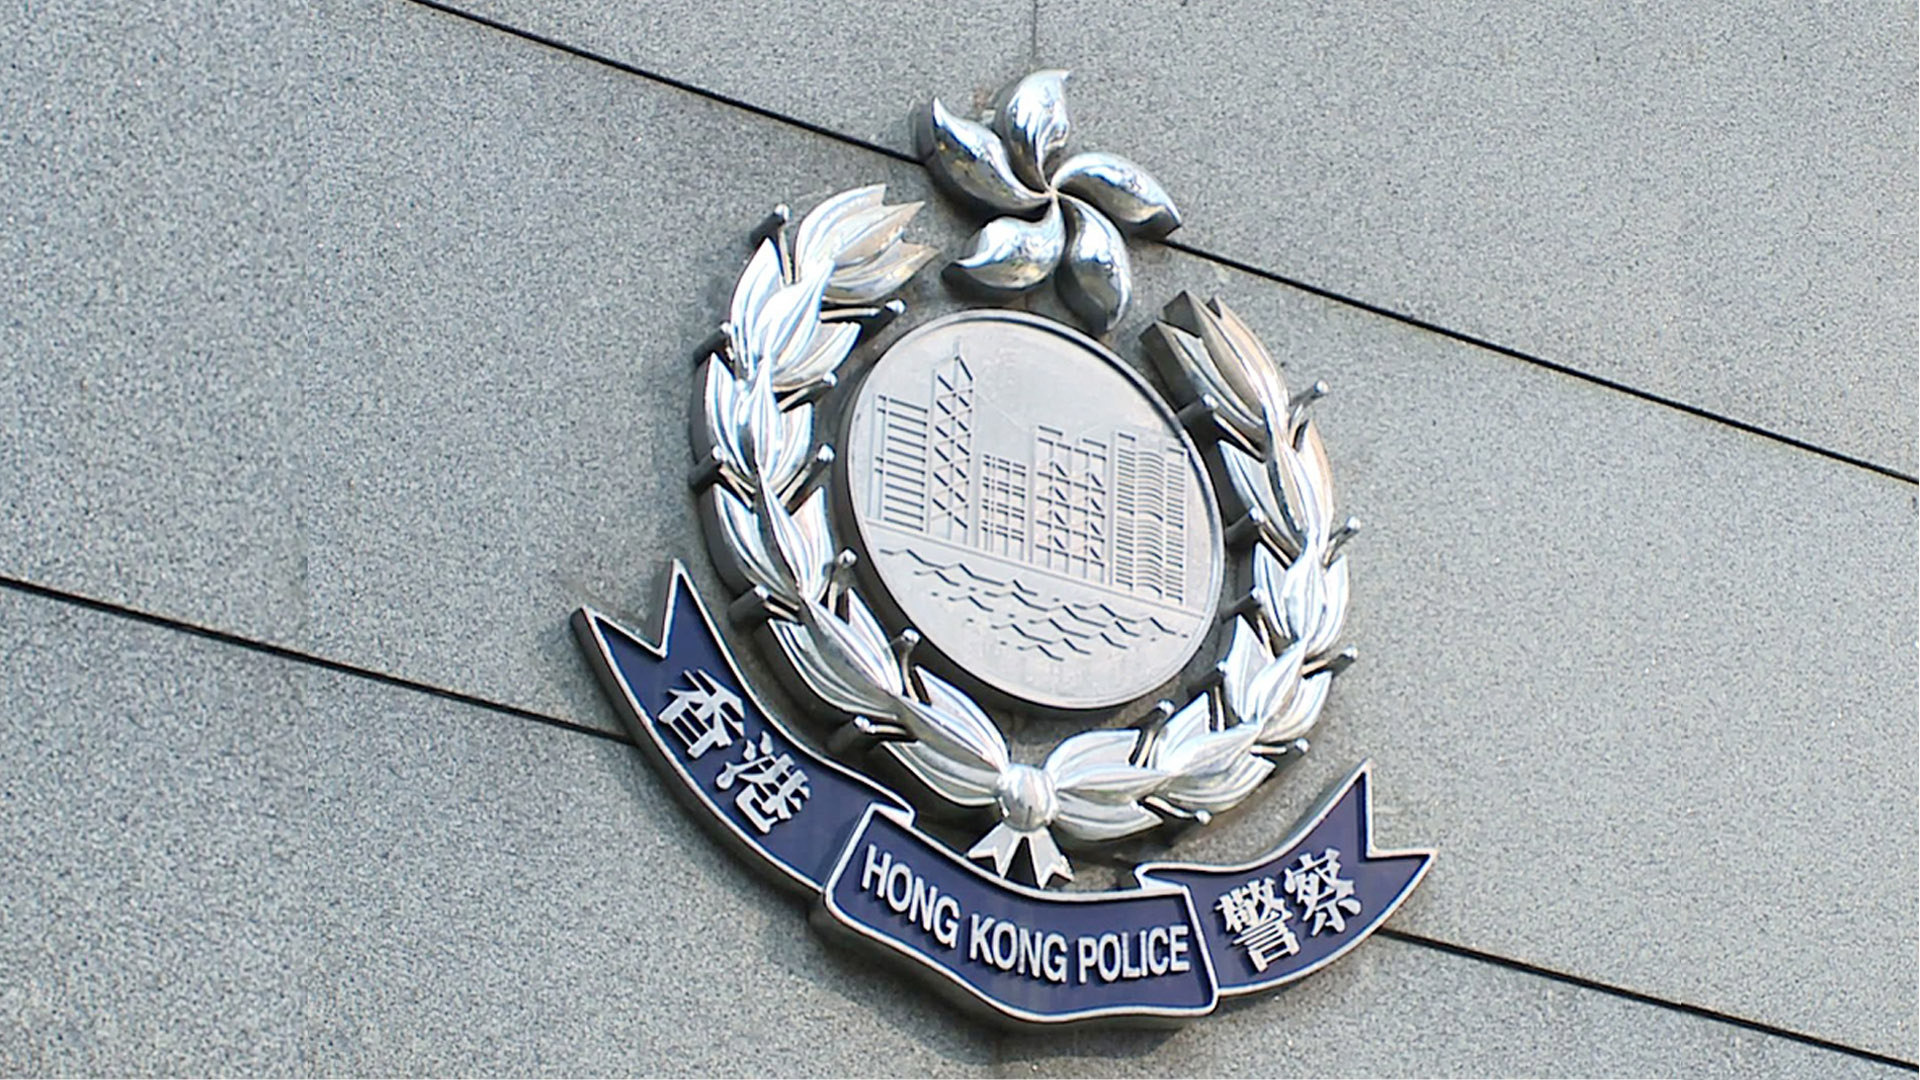 Hong Kong police arrest 8 people for unlawful assembly